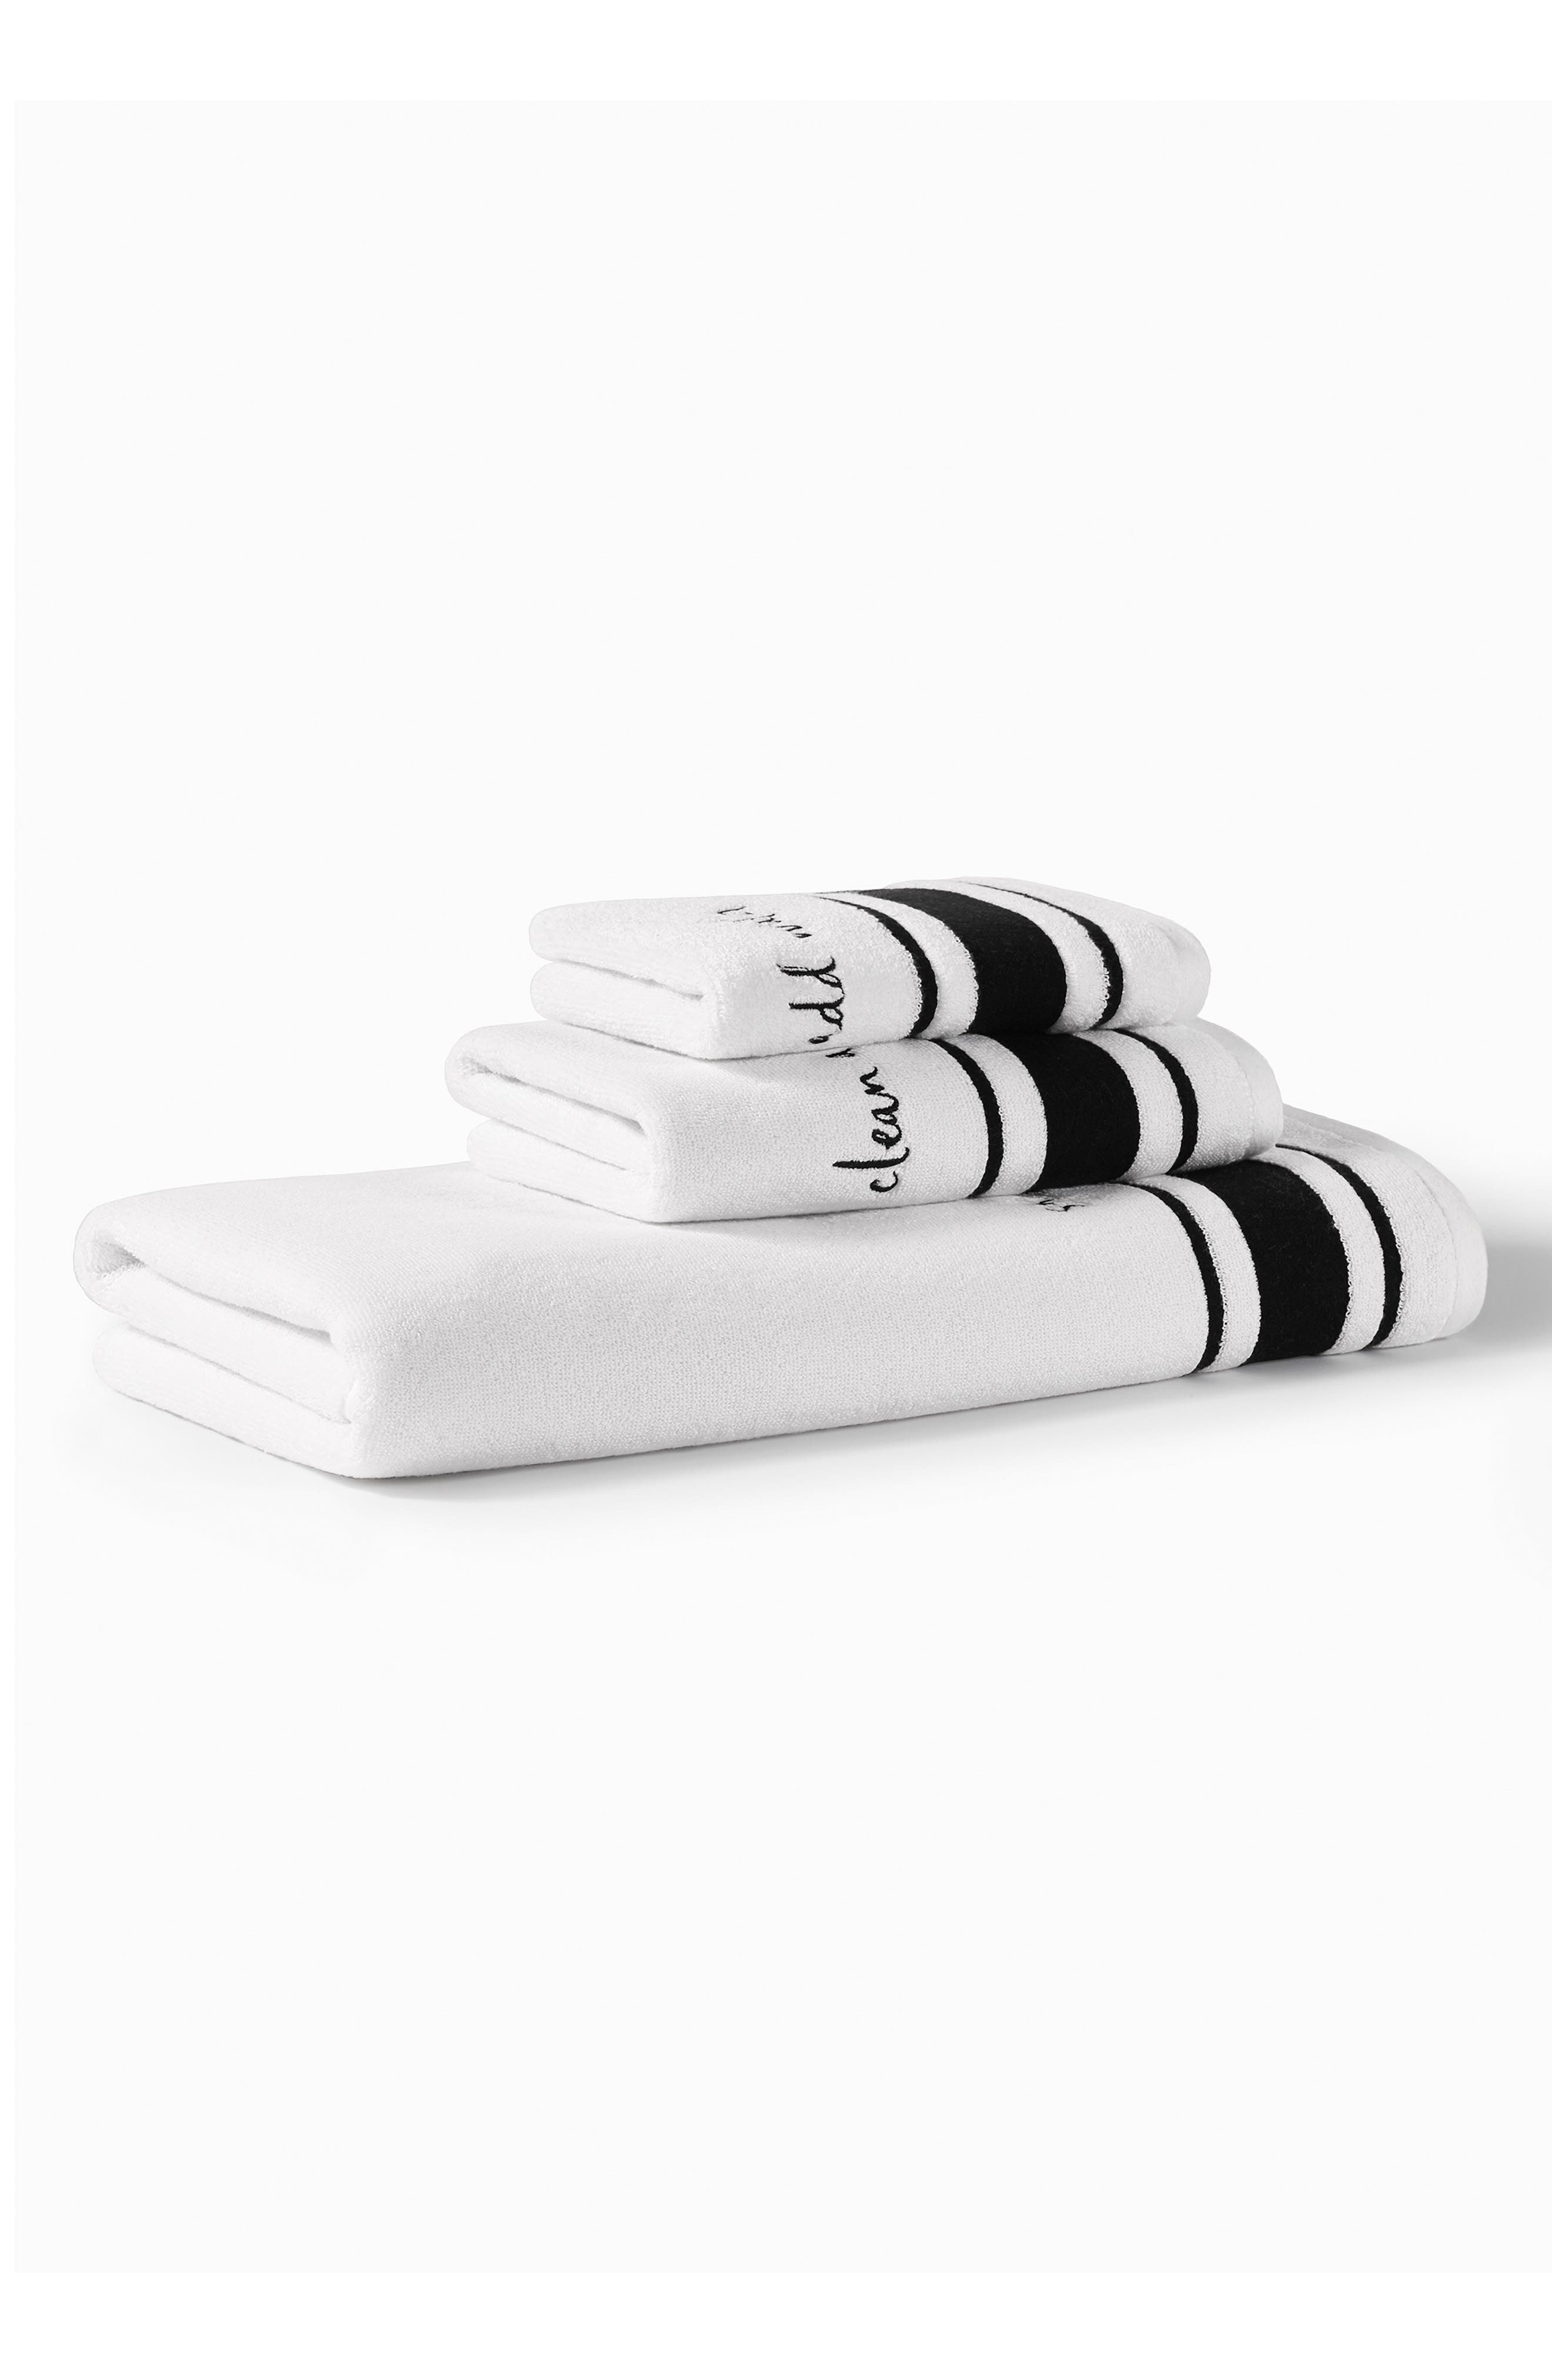 daisy place hand towel,                             Alternate thumbnail 3, color,                             100